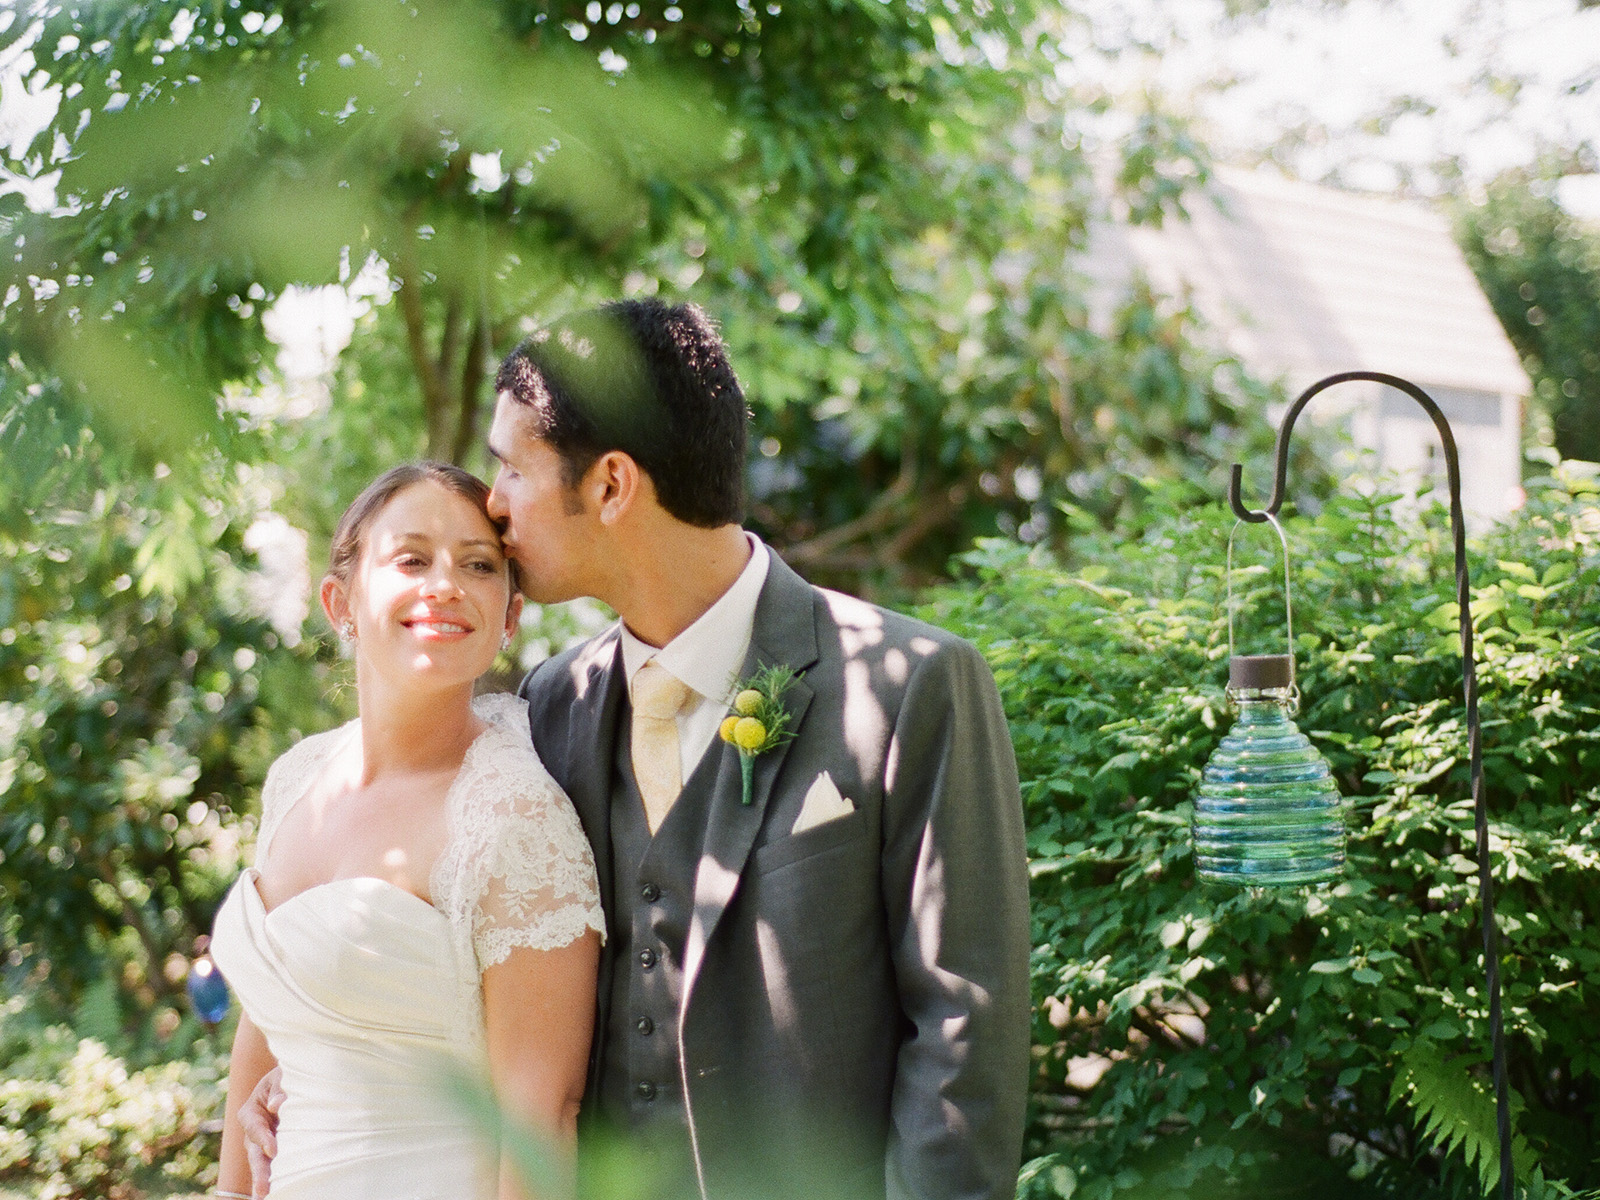 groom kissing bride on forehead with many green leaves in fore and background